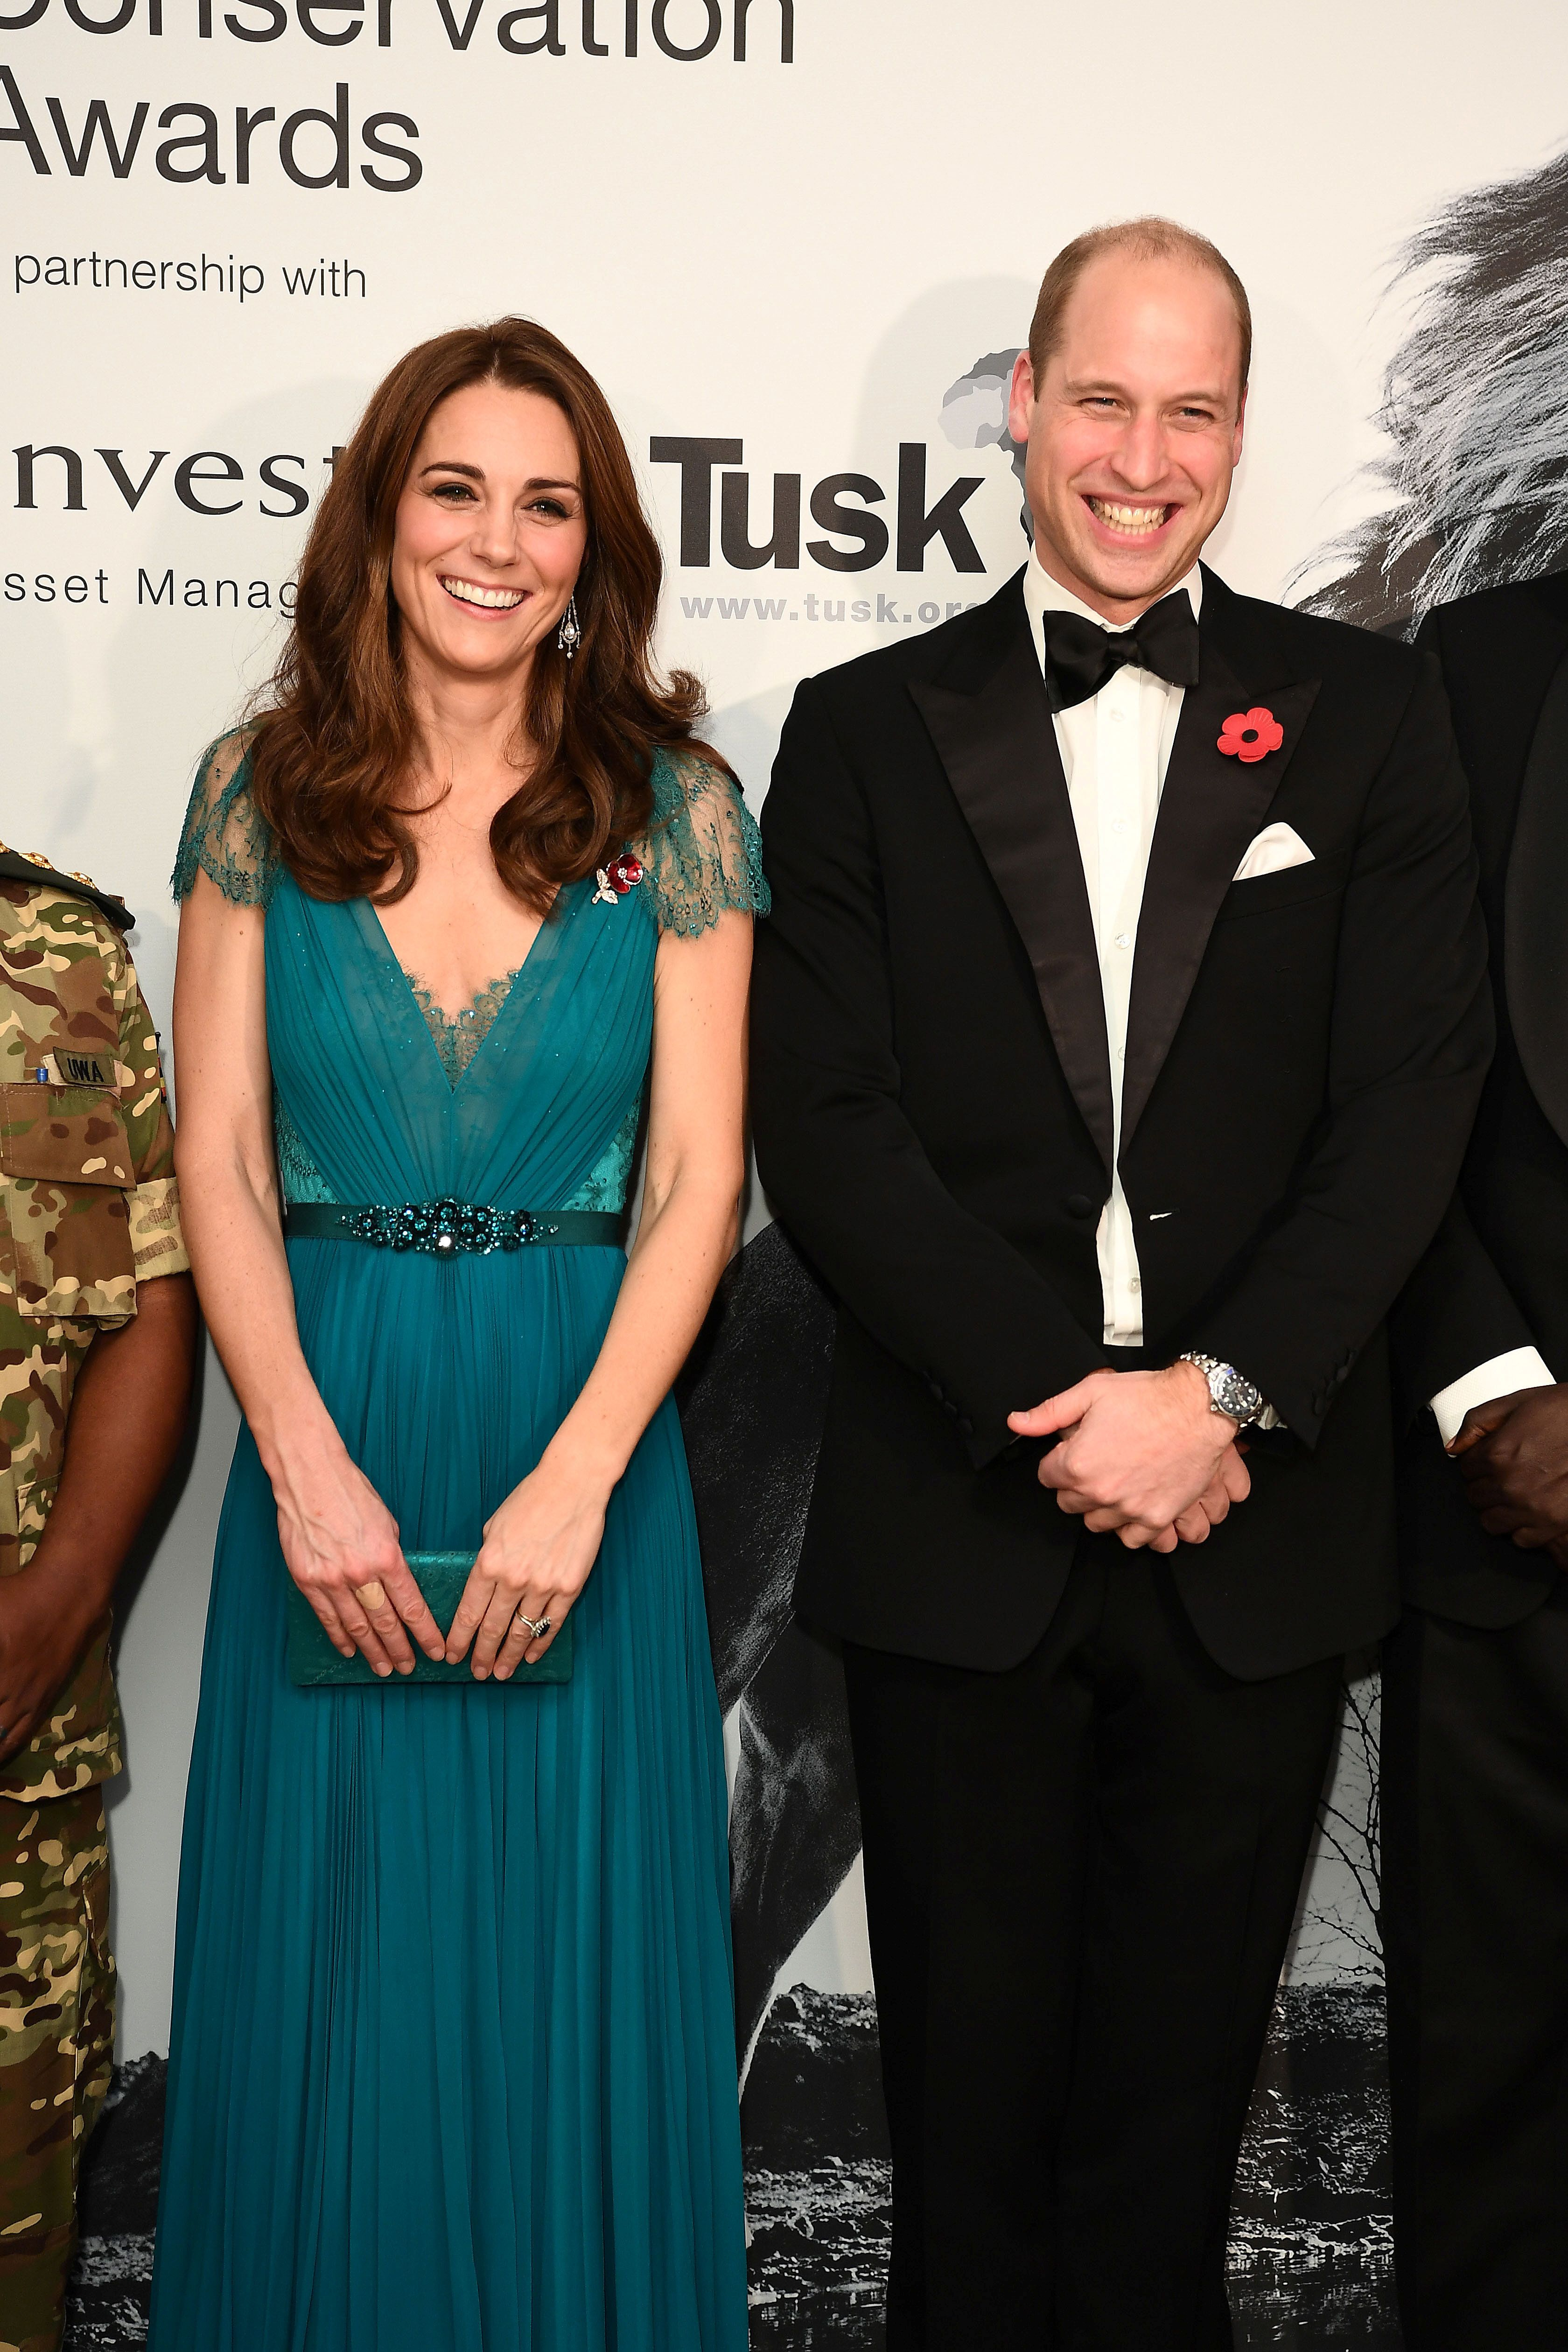 Britain's Prince William and Catherine, Duke and Duchess of Cambridge, pose as they attend the Tusk Conservation Awards in London, Britain November 8, 2018. Jeff Spicer/Pool via REUTERS